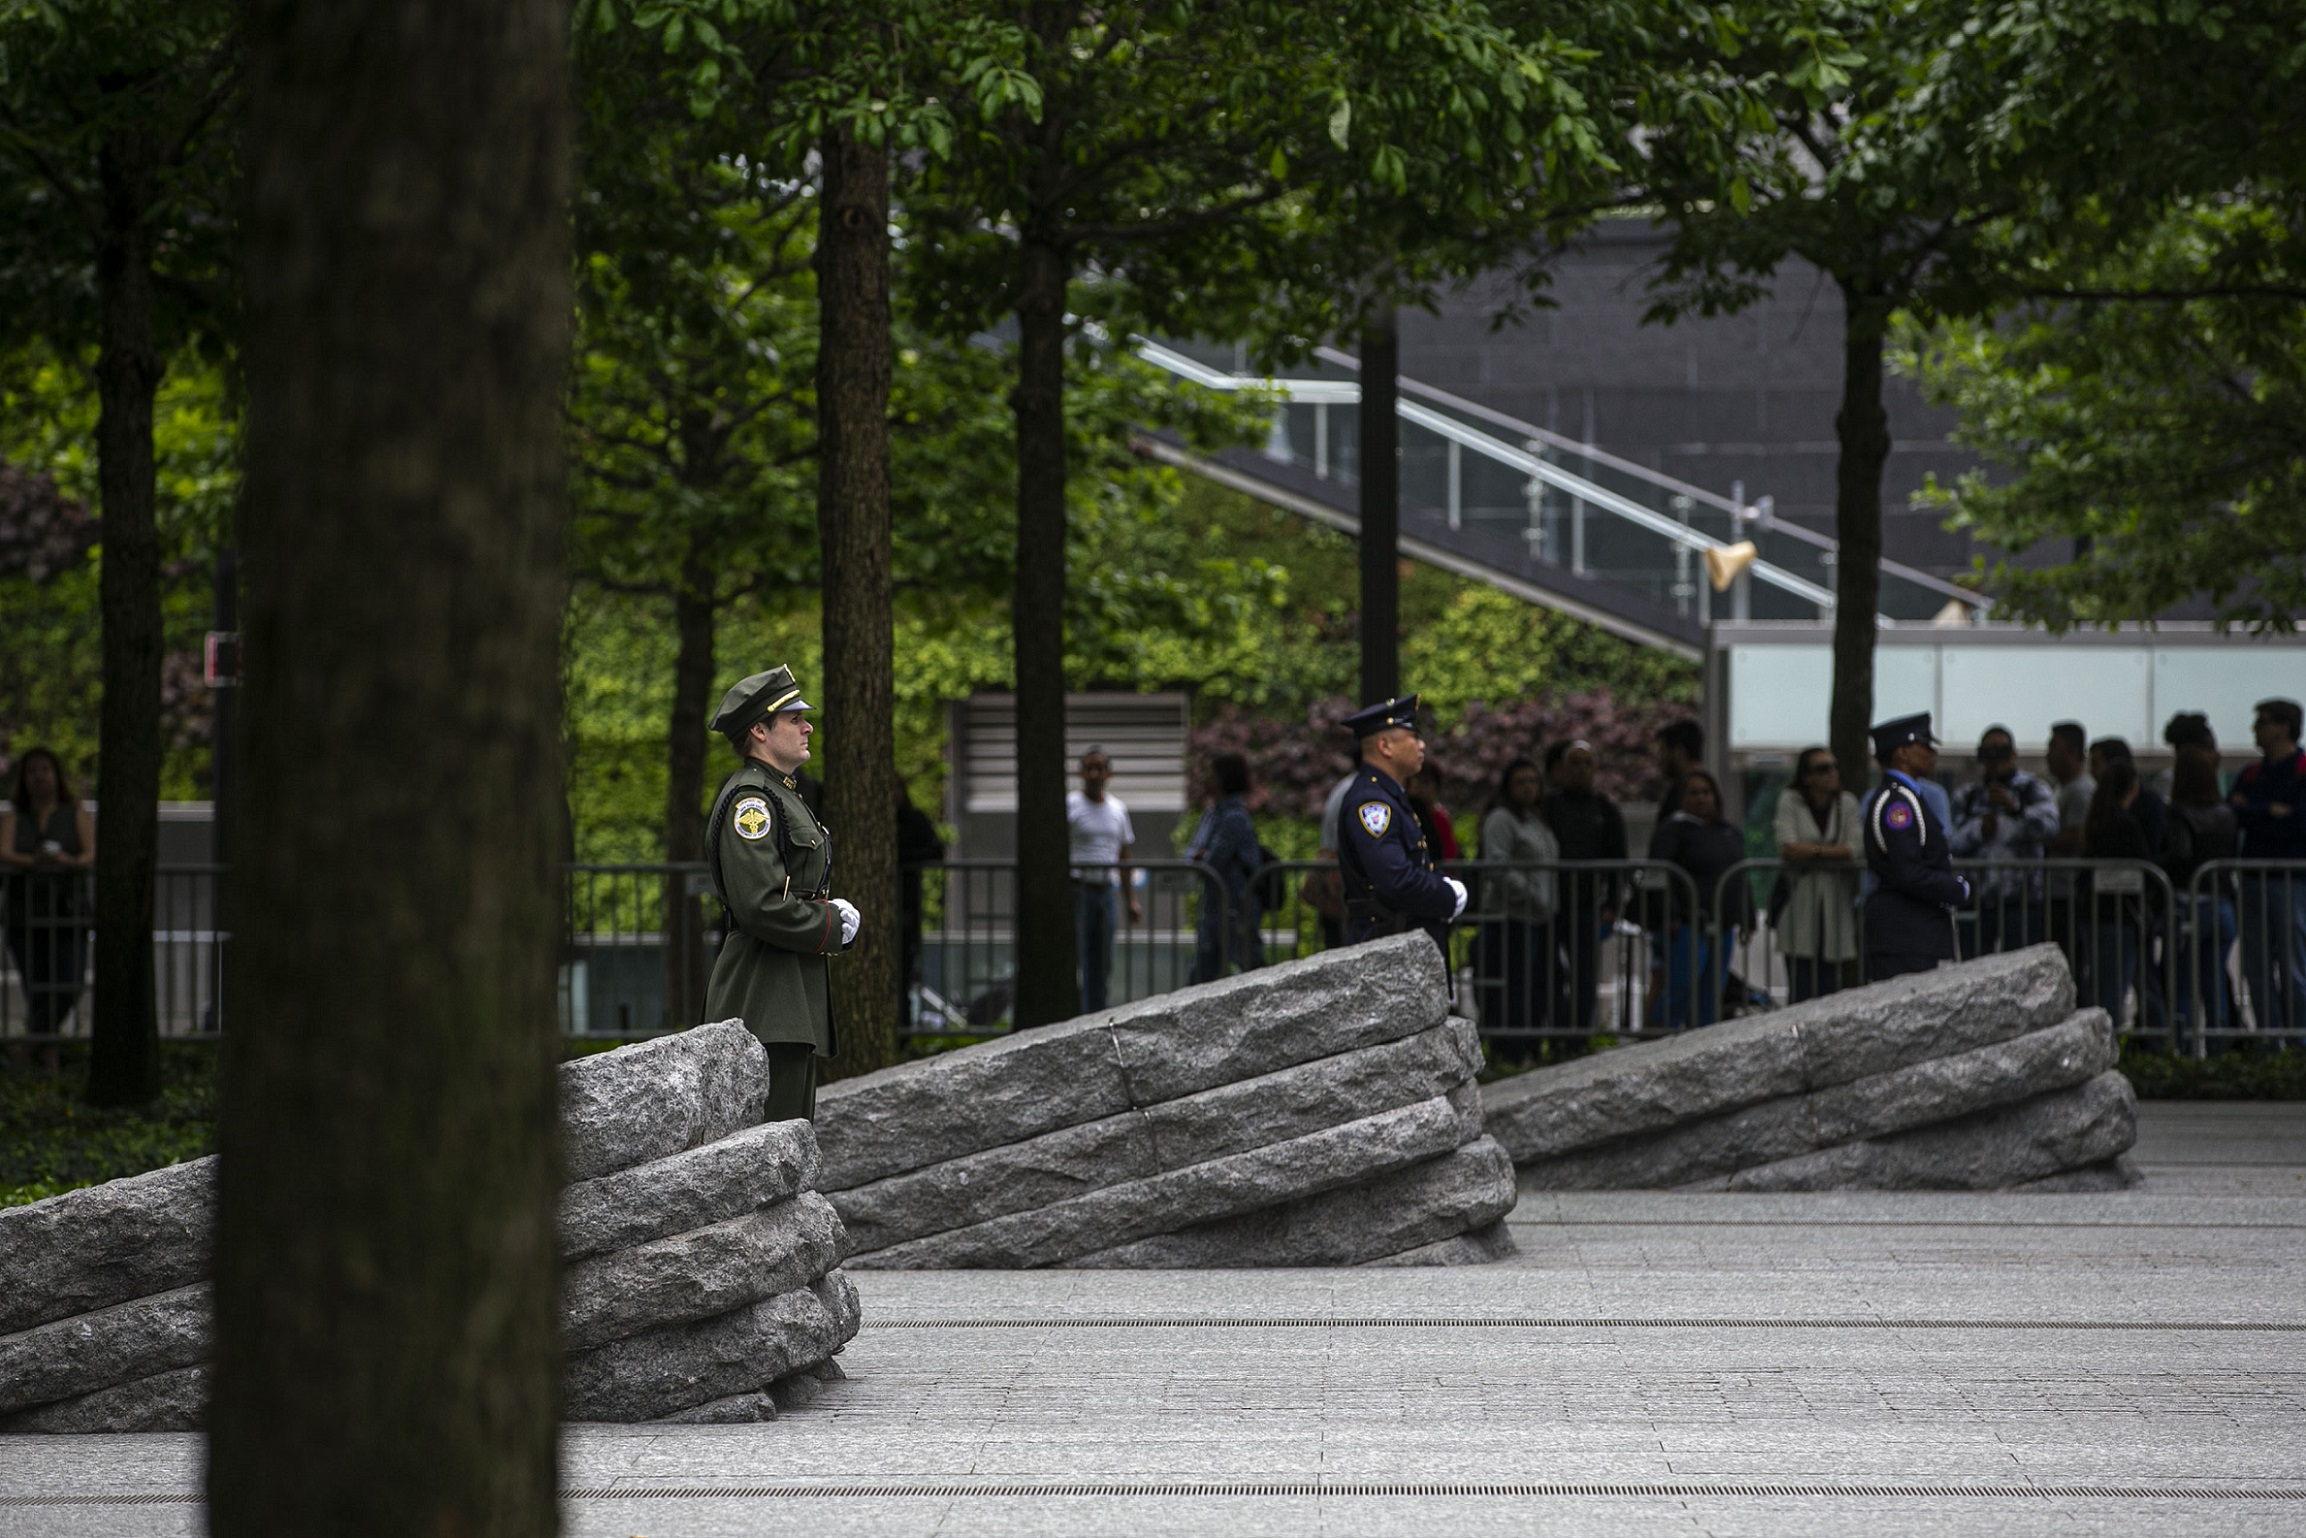 Three officials in formal uniforms stand beside three granite monoliths at the Memorial Glade. A crowd of people has gathered in the shade of trees behind them.